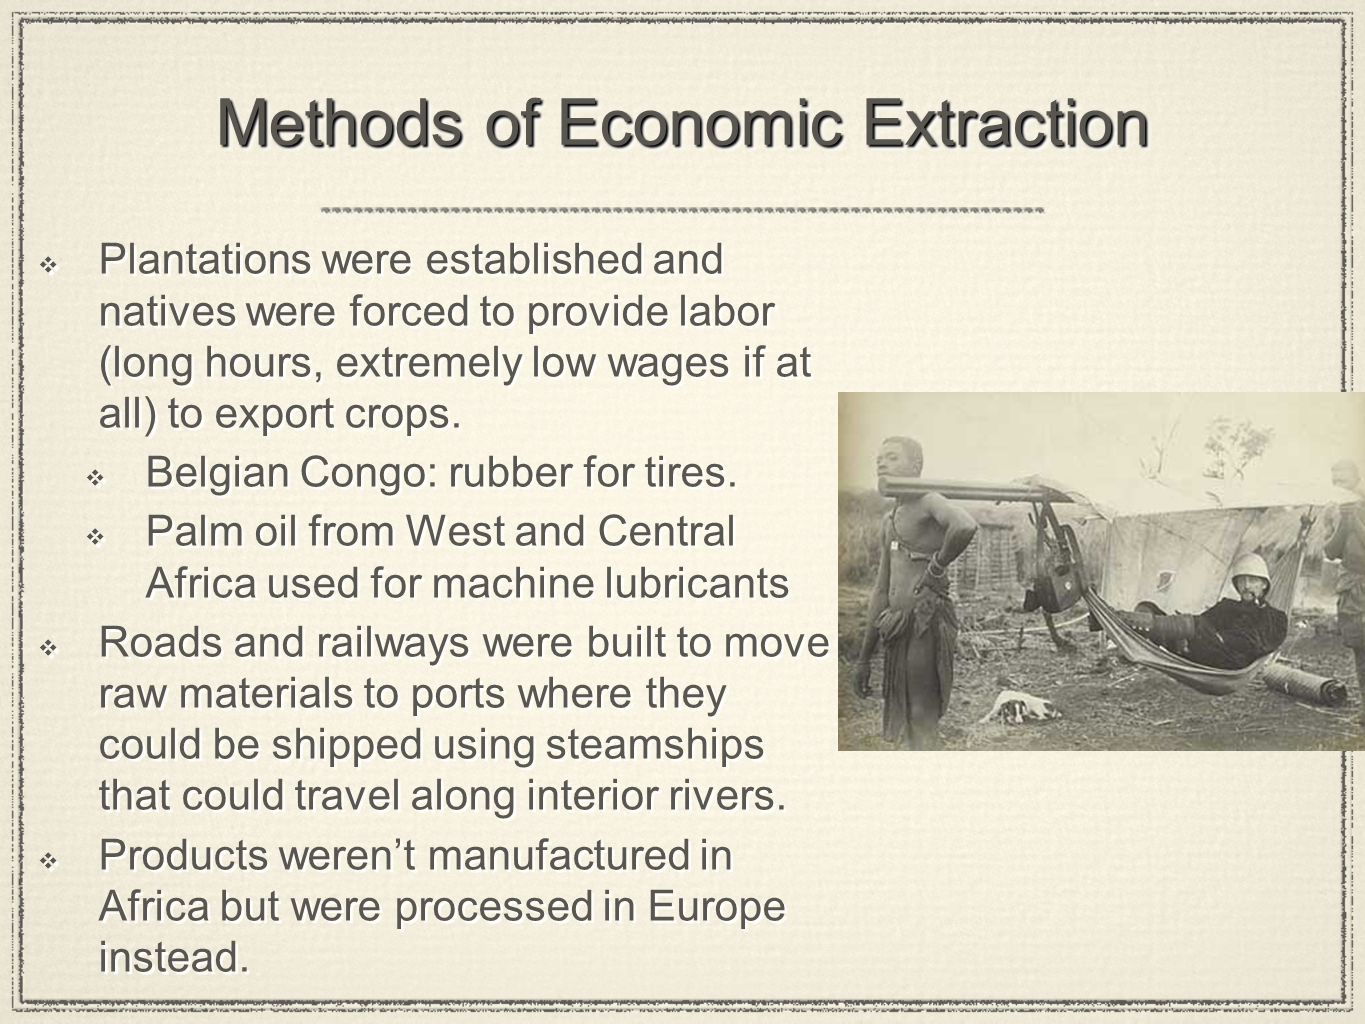 Methods of Economic Extraction